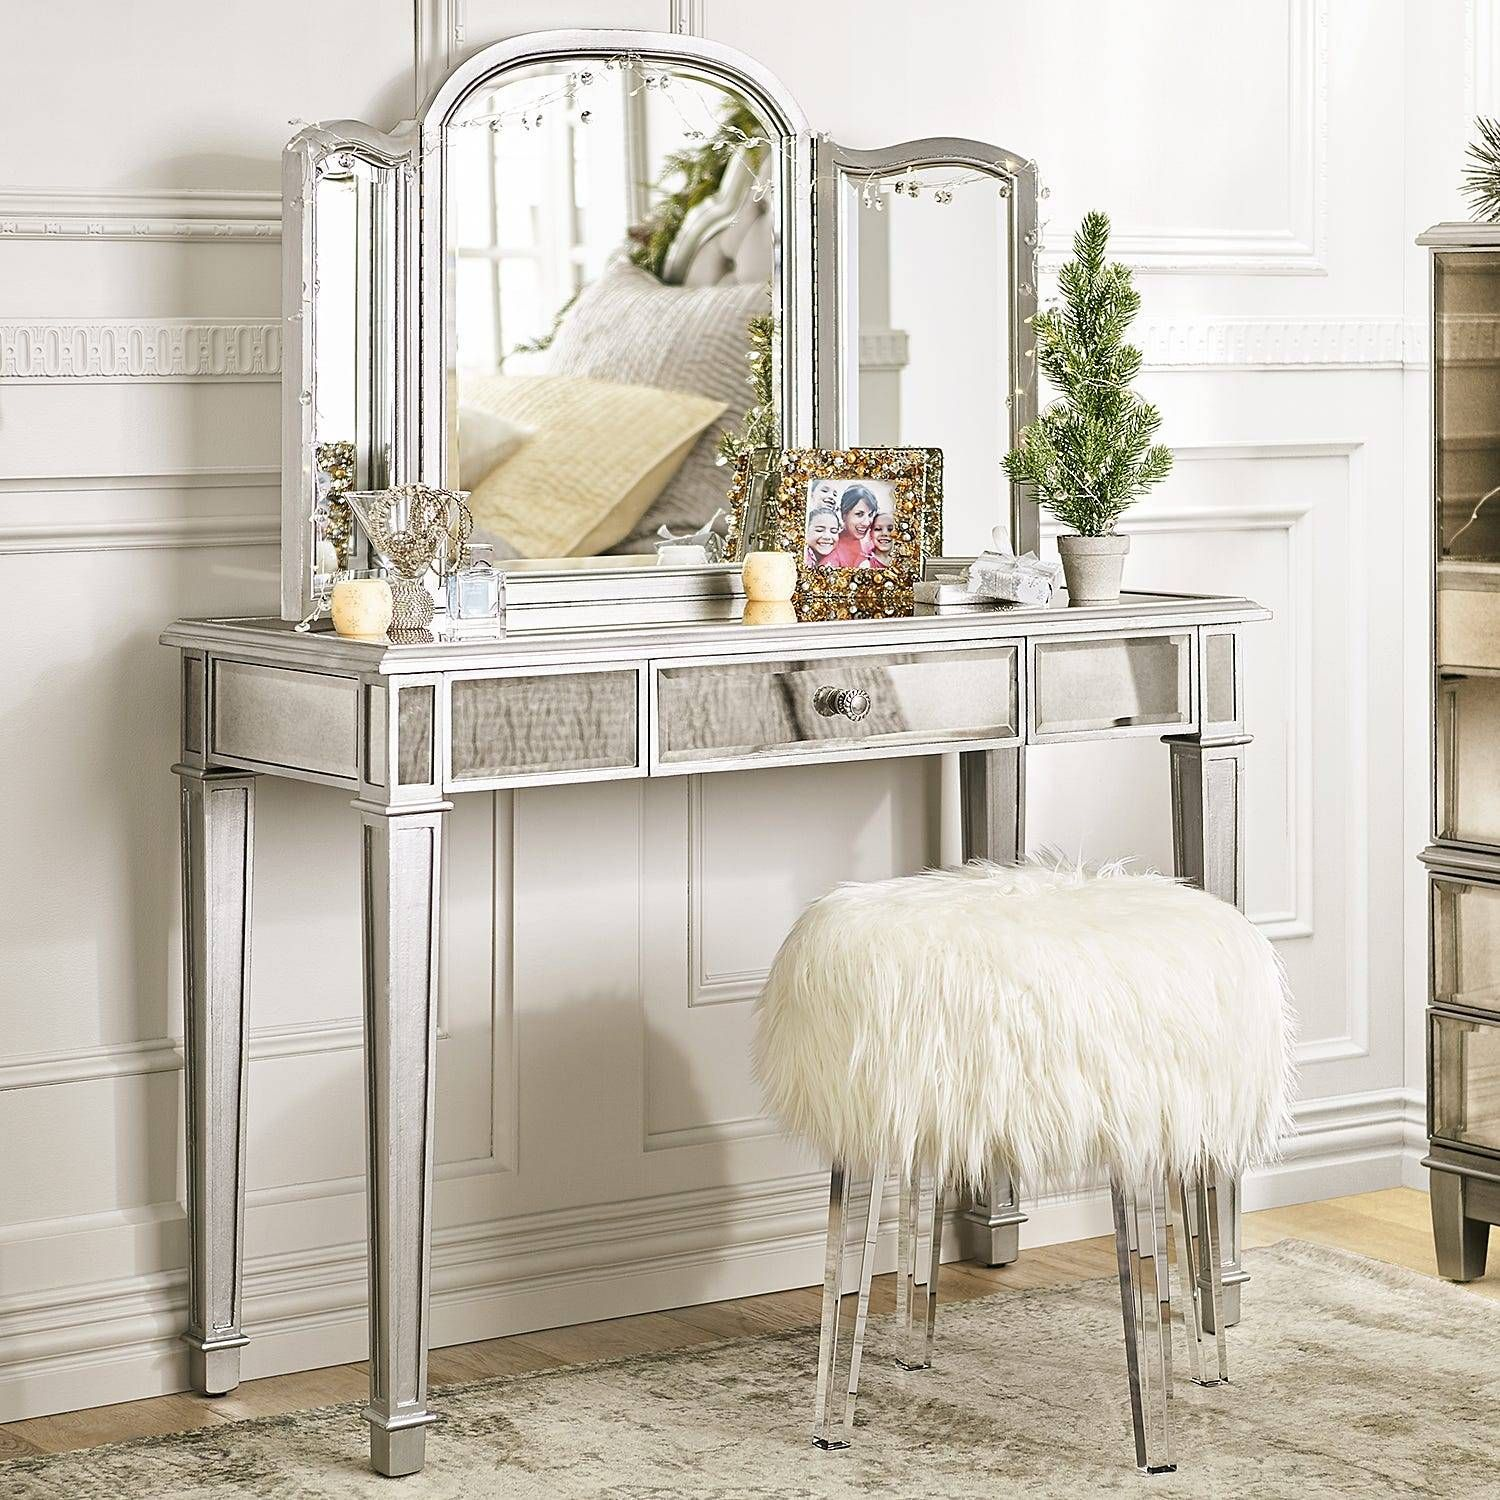 Mirrored Furniture Pier 1 Ikea Save This Item To Pinterest Pier